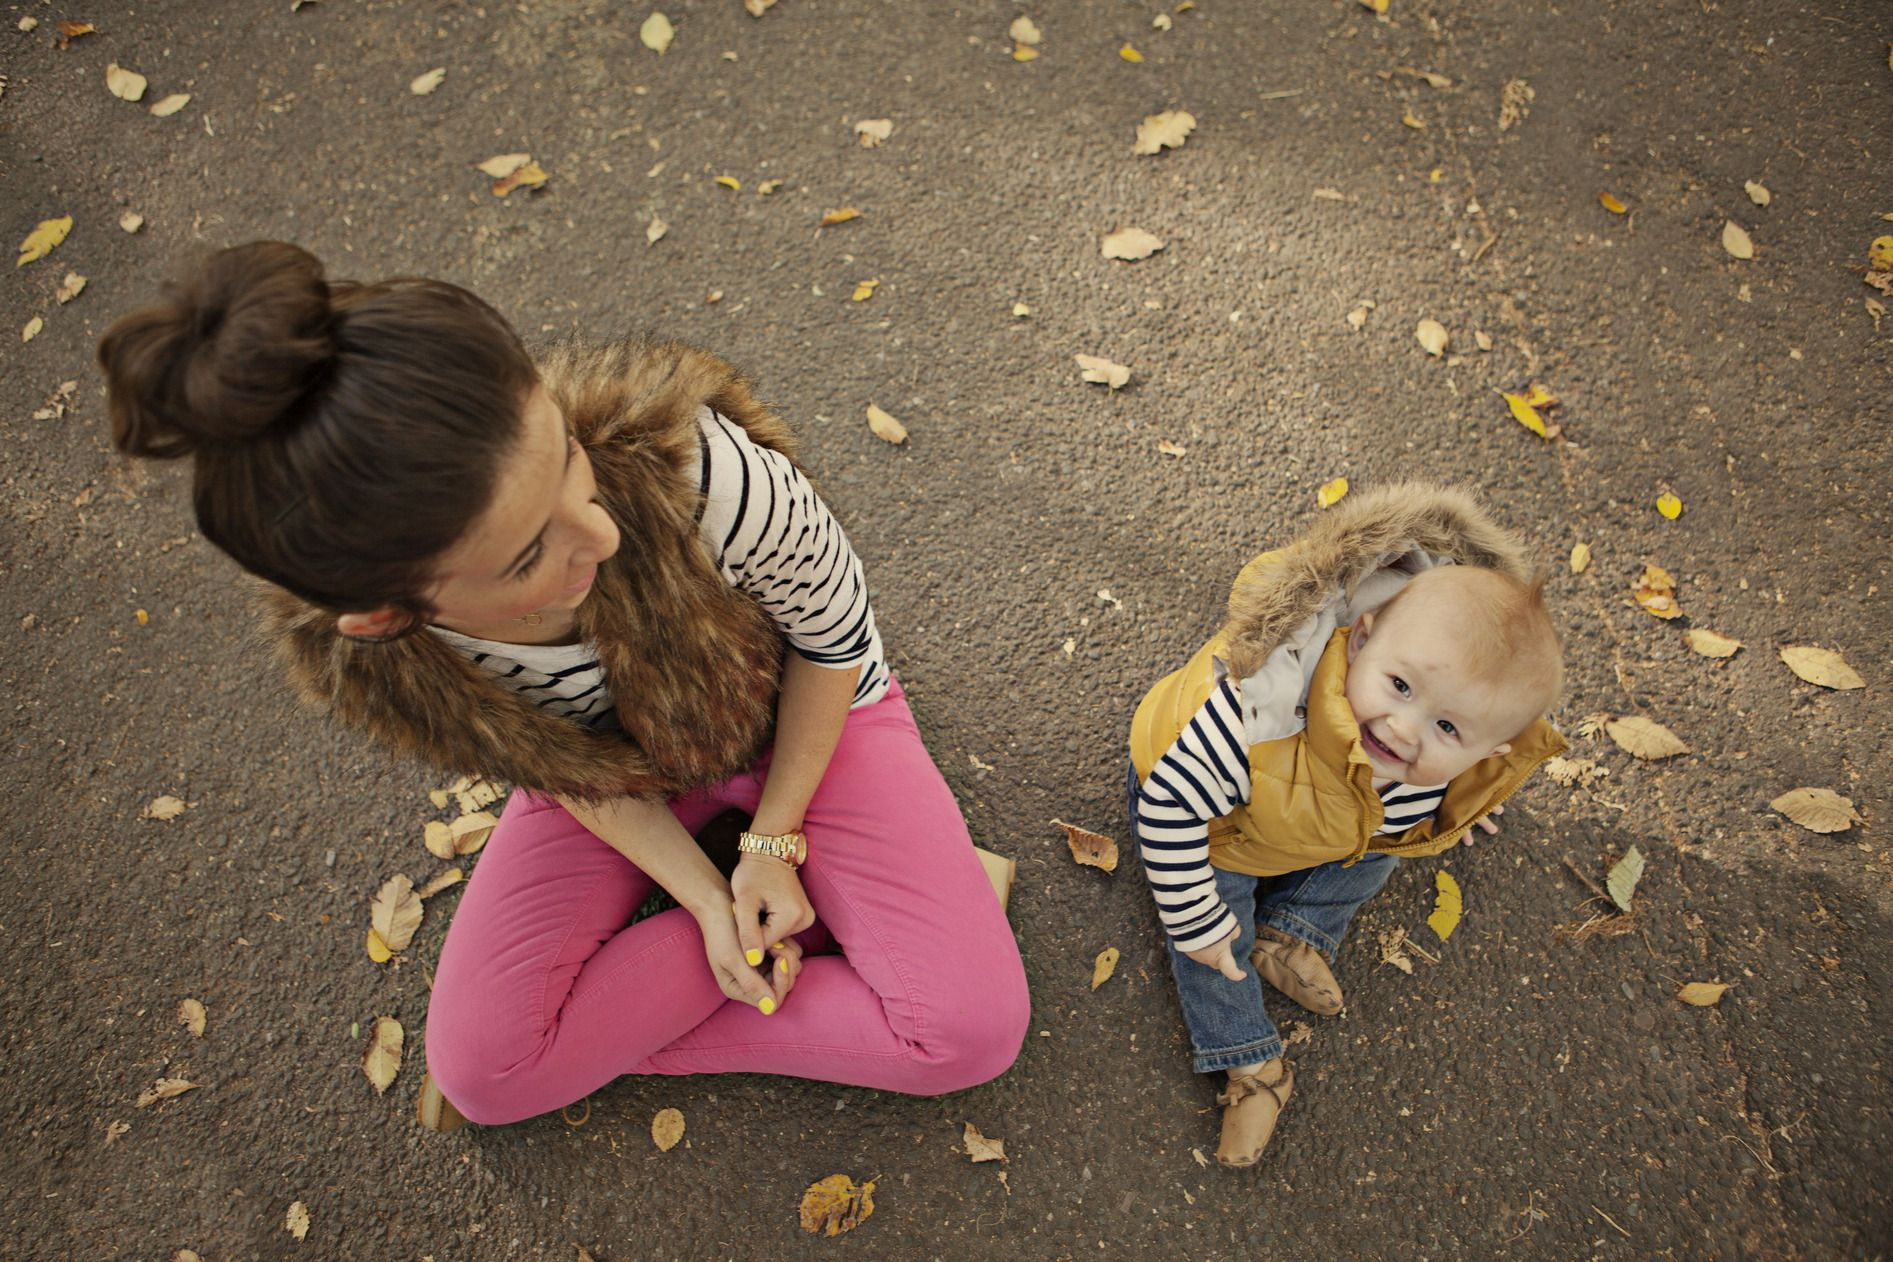 I love her outfit. Pink jeans, striped shirt, fur vest, and top knot! And the baby is sooo cute!